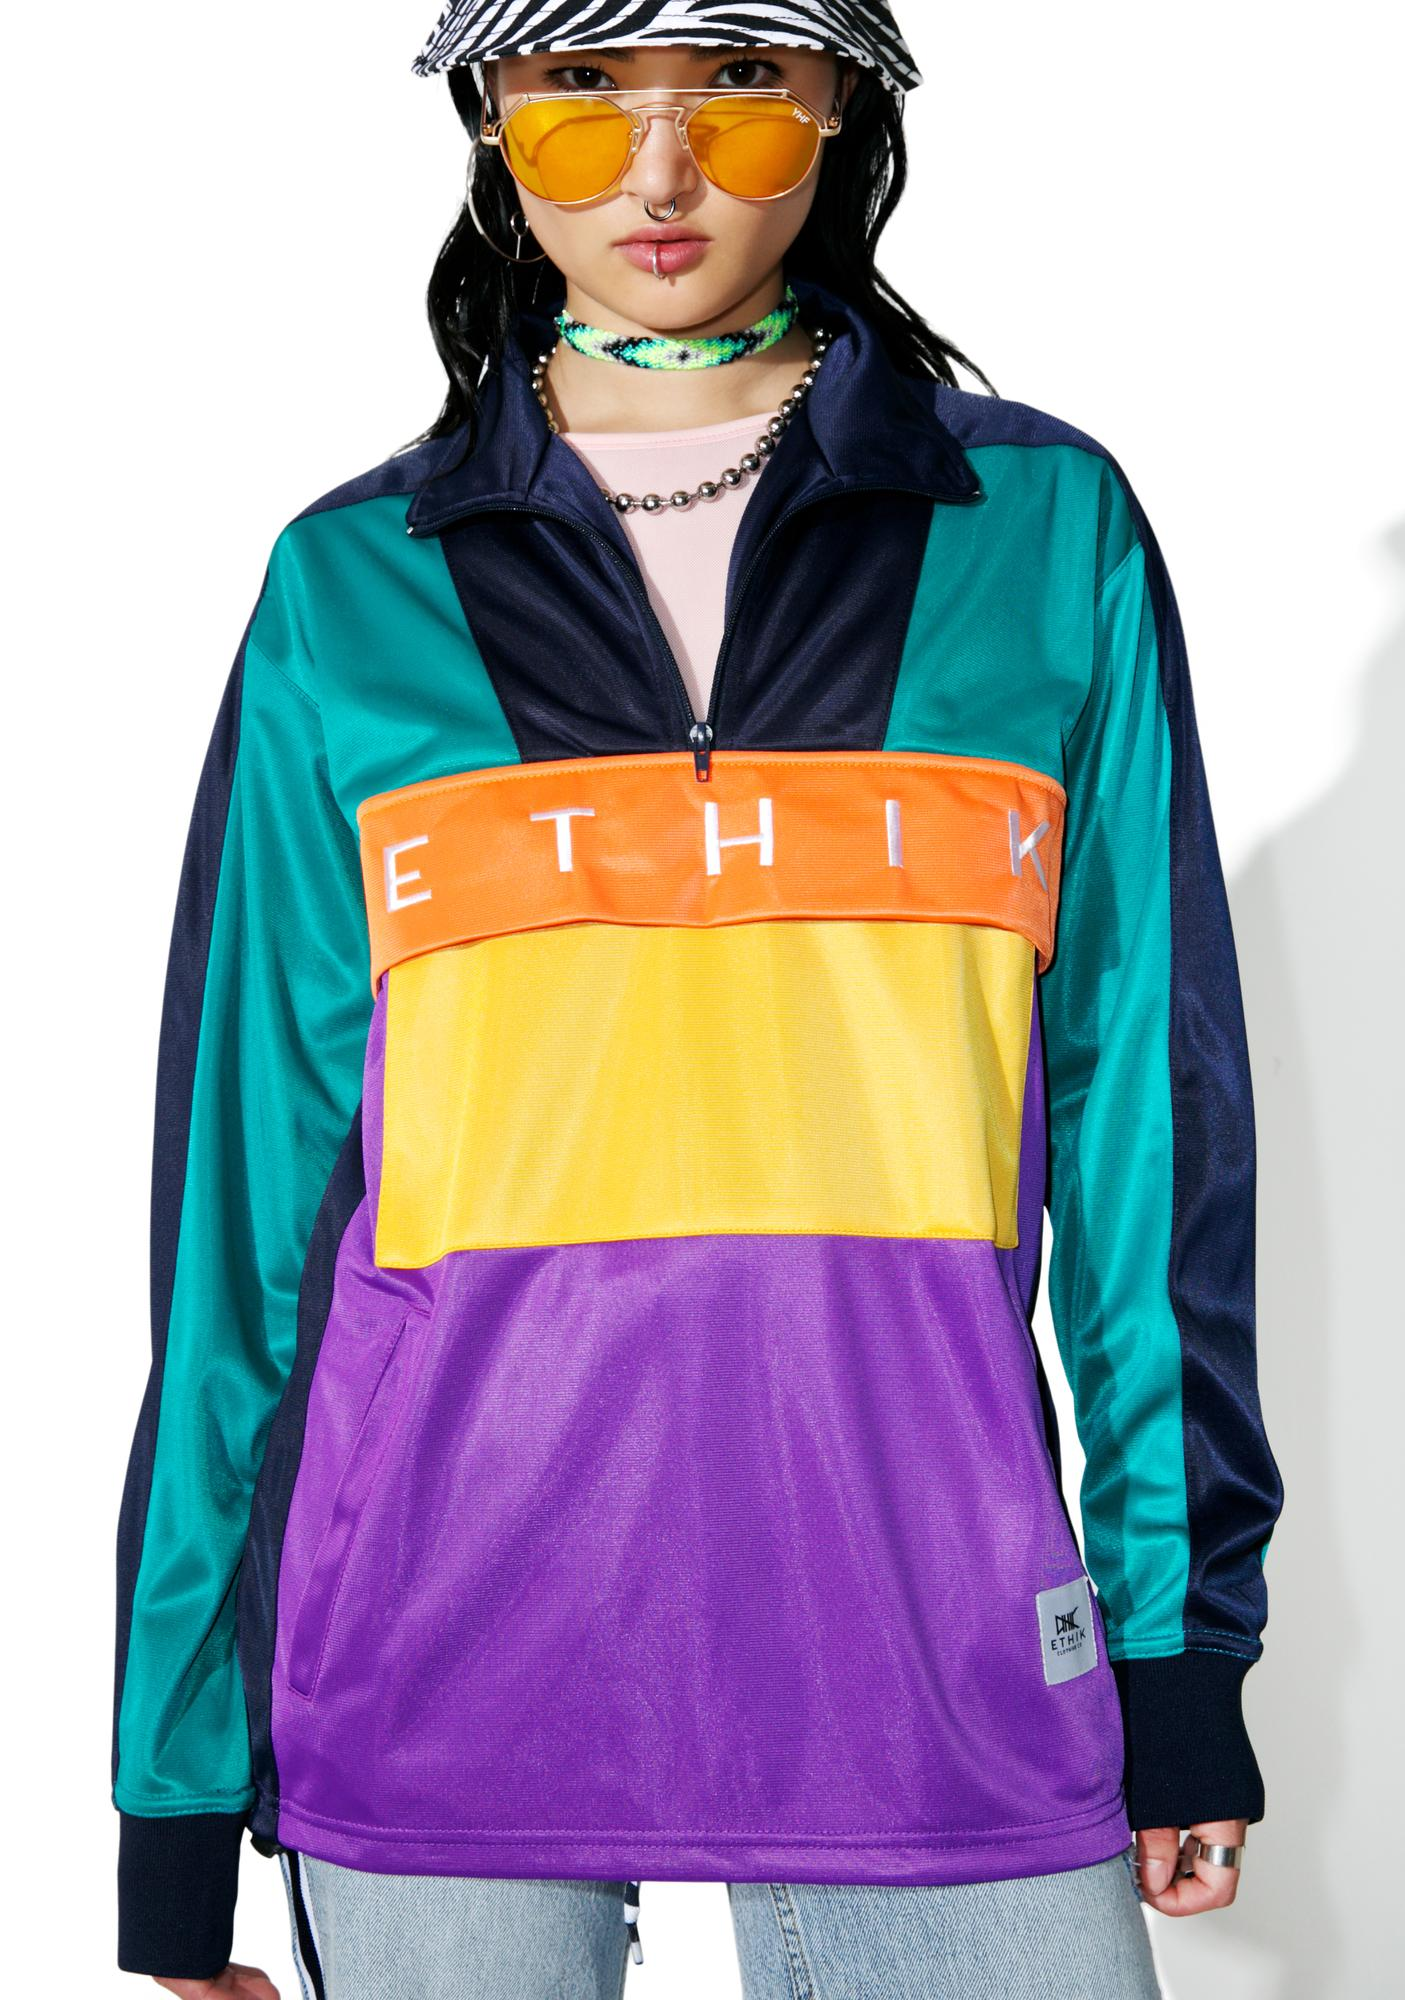 ETHIK Conference Champs Pullover Track Jacket | Dolls Kill